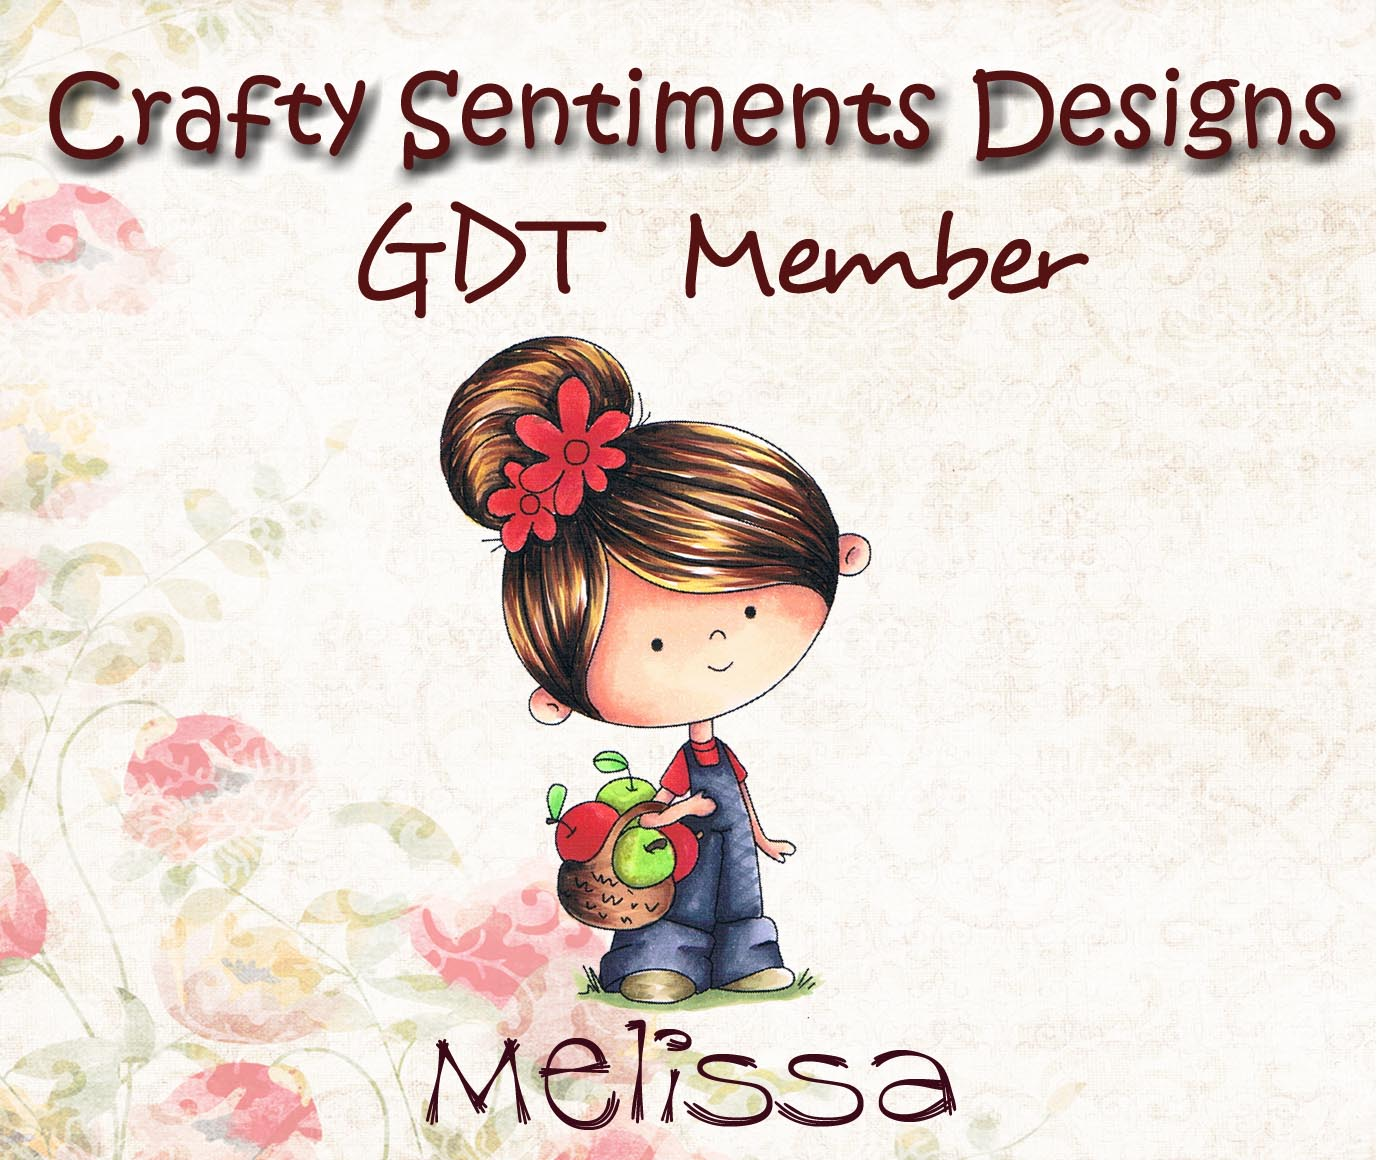 Guest DT for Crafy Sentiments Challenge